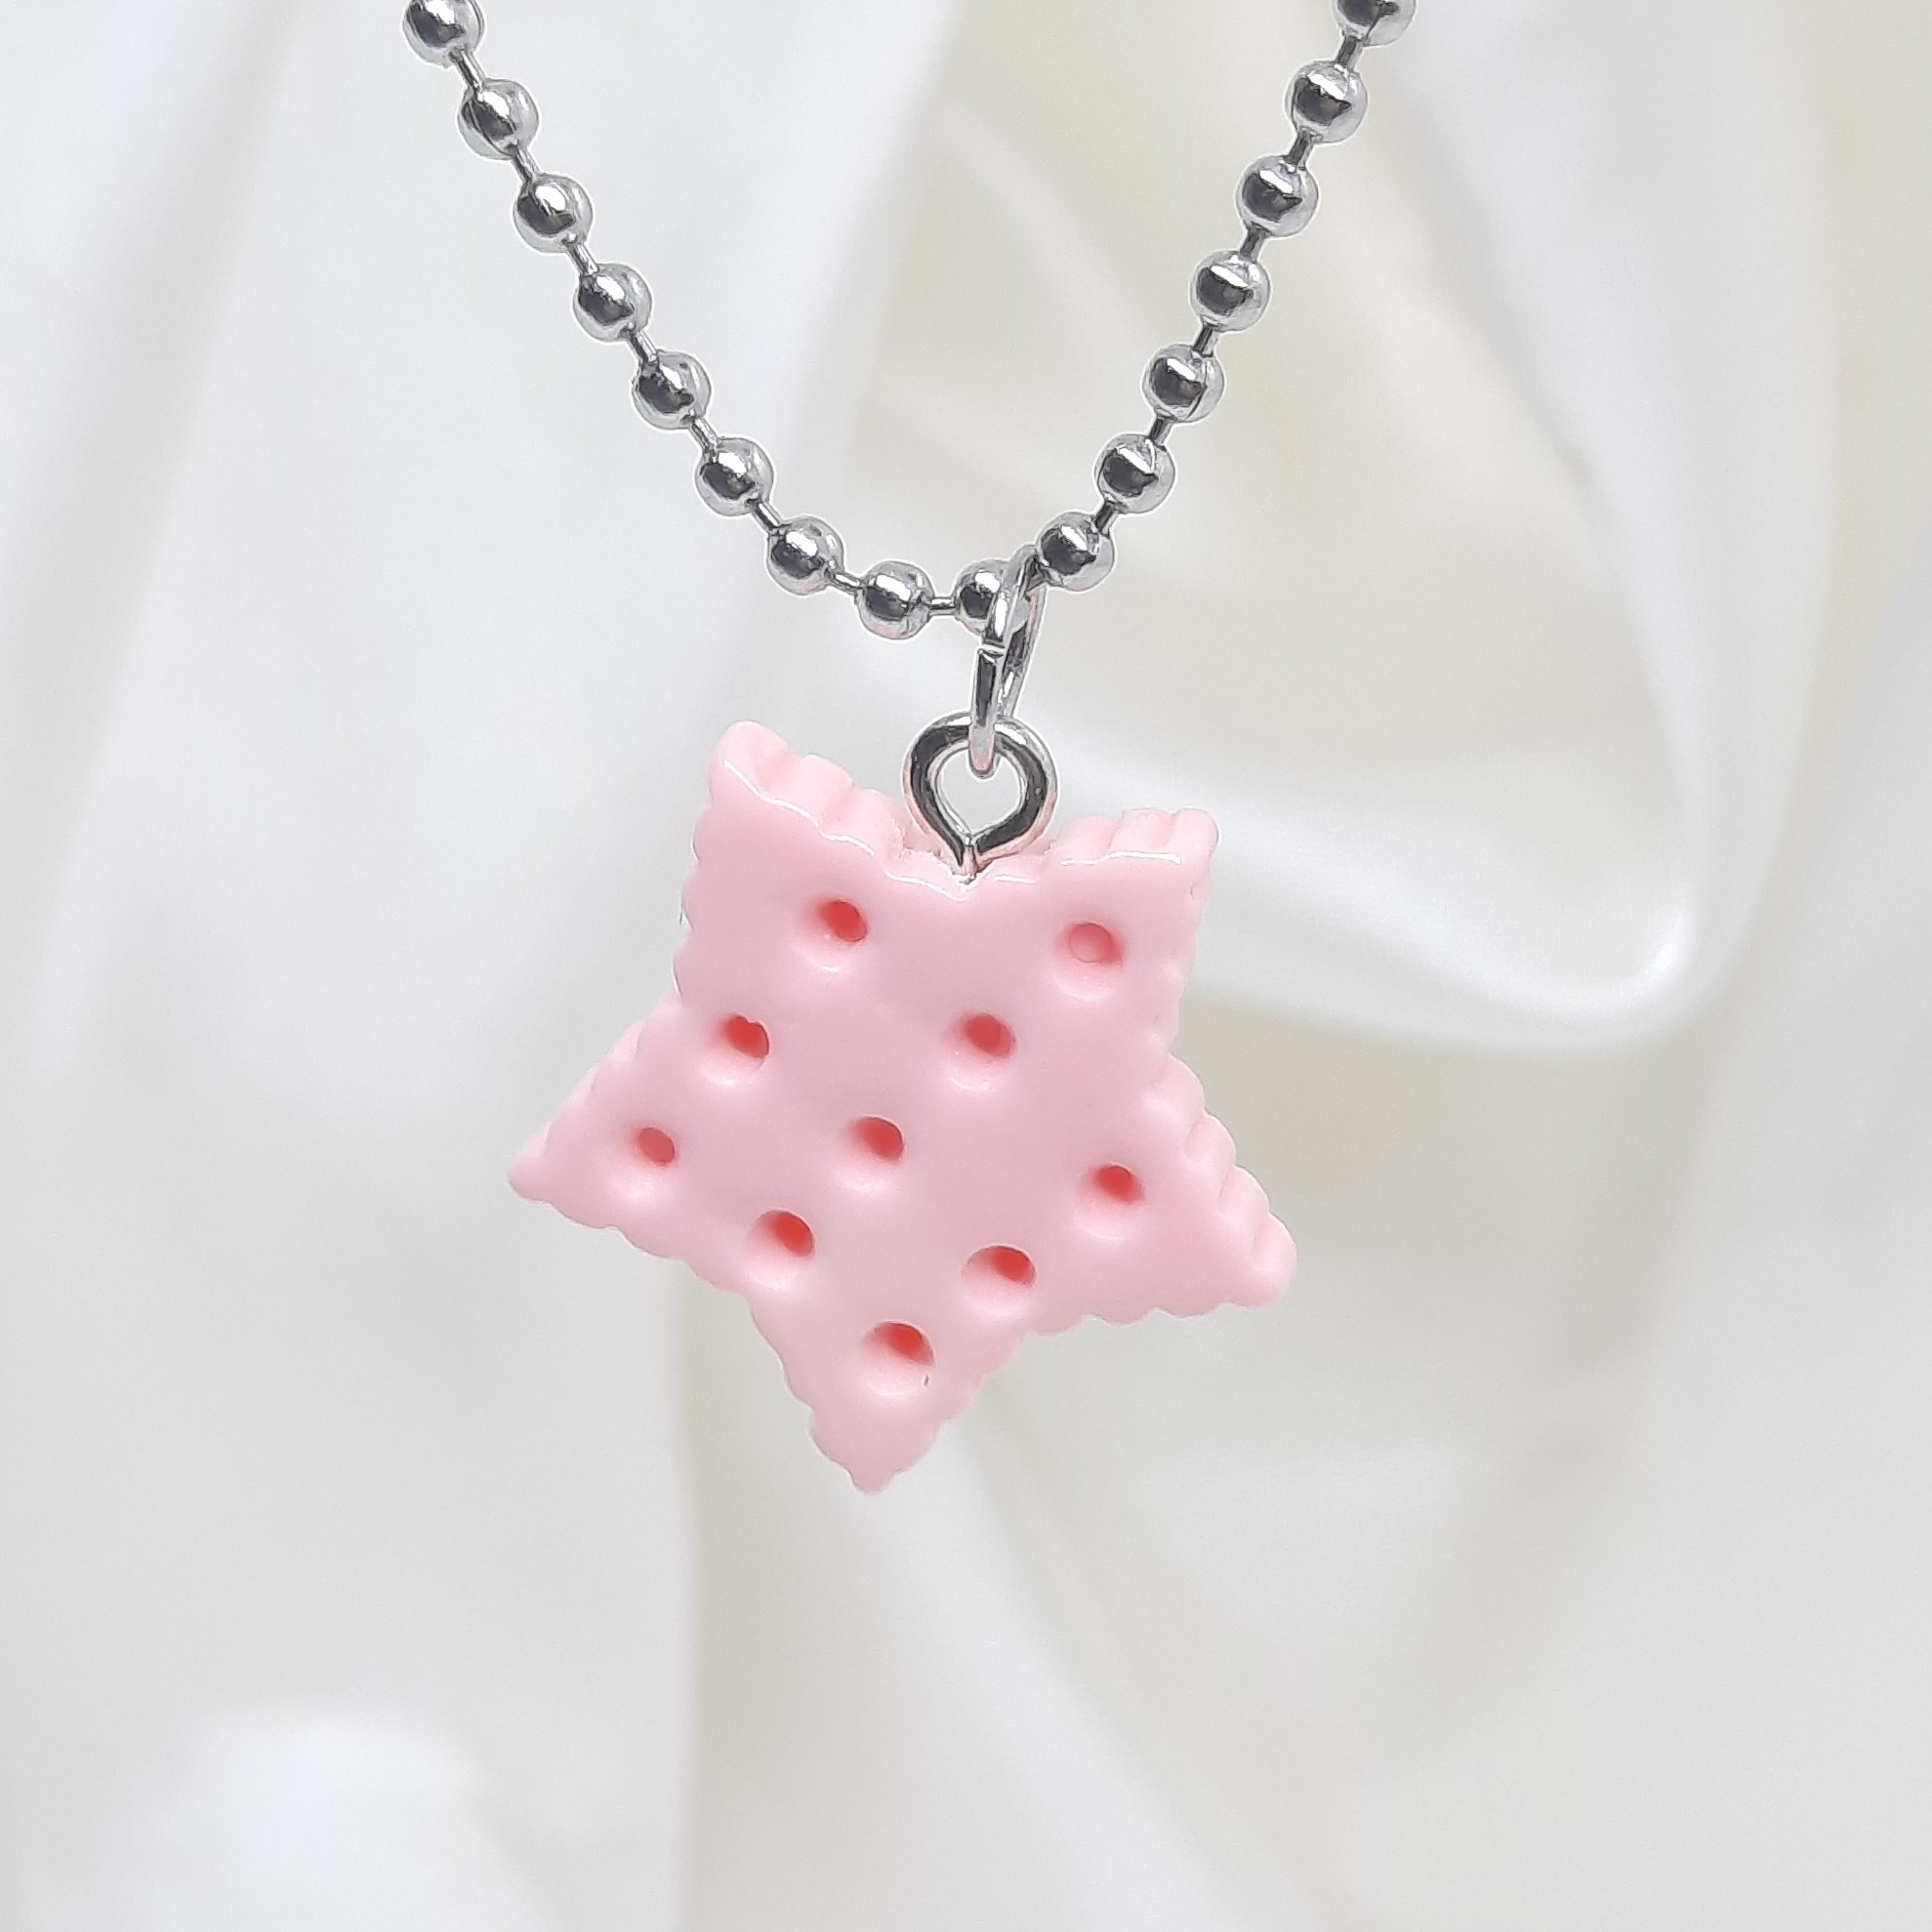 Product Image 1 - 🍬Star Biscuit Necklace🍦  Handmade pink necklace,